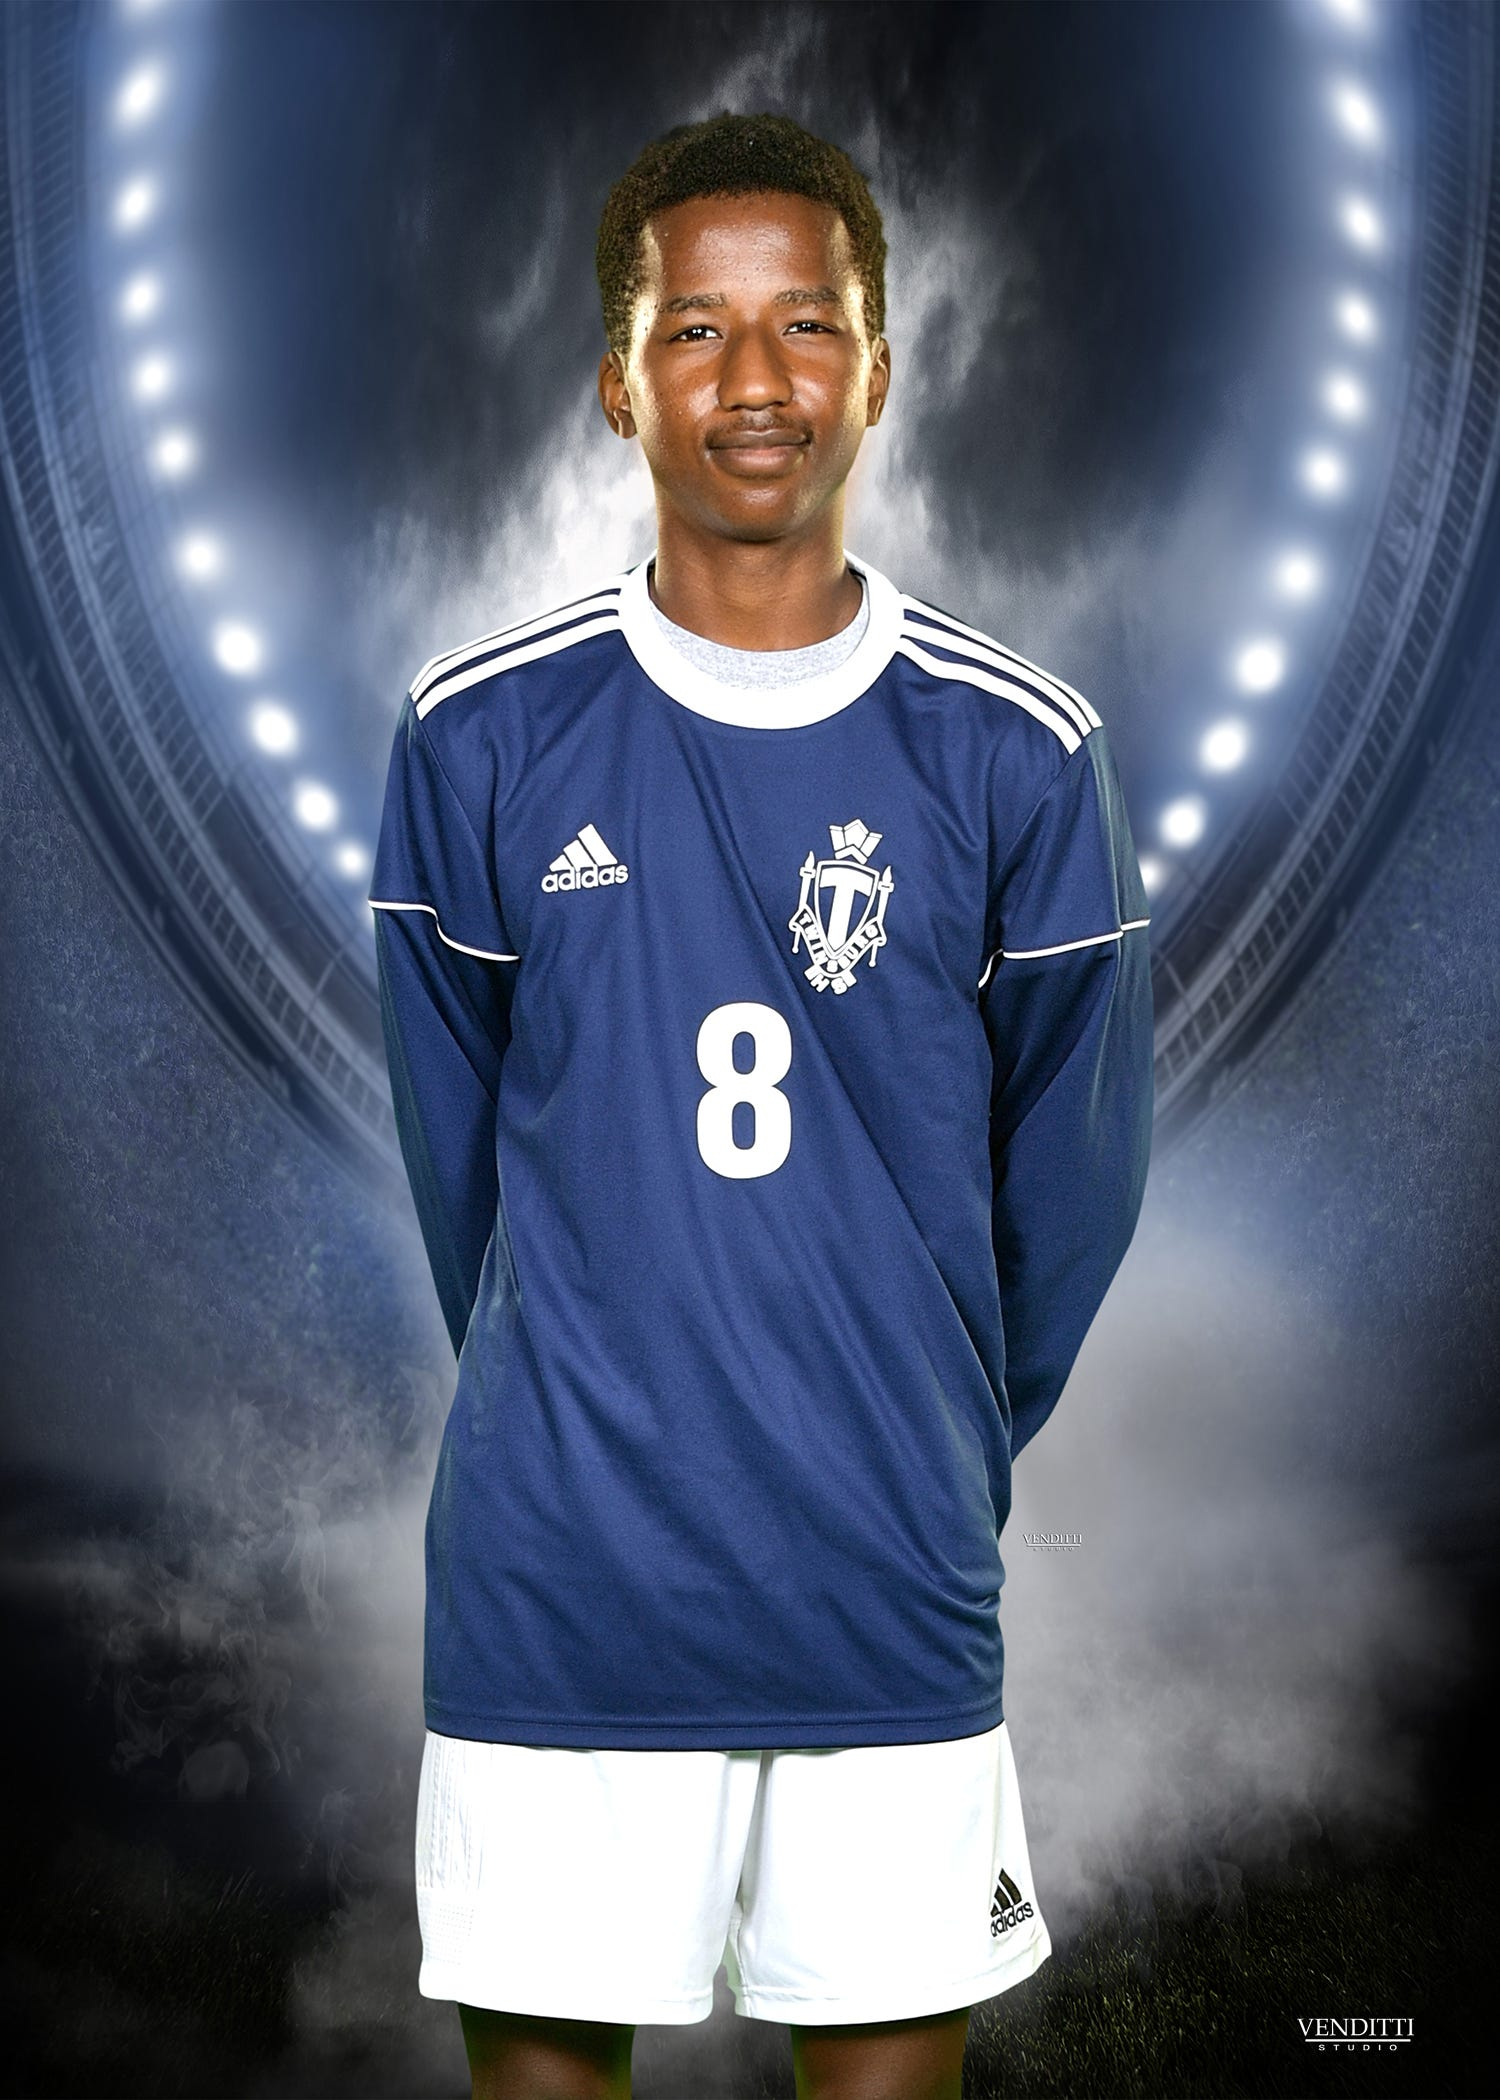 Twinsburg's Uleto Fuentes had 10 goals and 10 assists last year, earning second-team All-Ohio honors in Division I. Twinsburg finished 10-5-3.